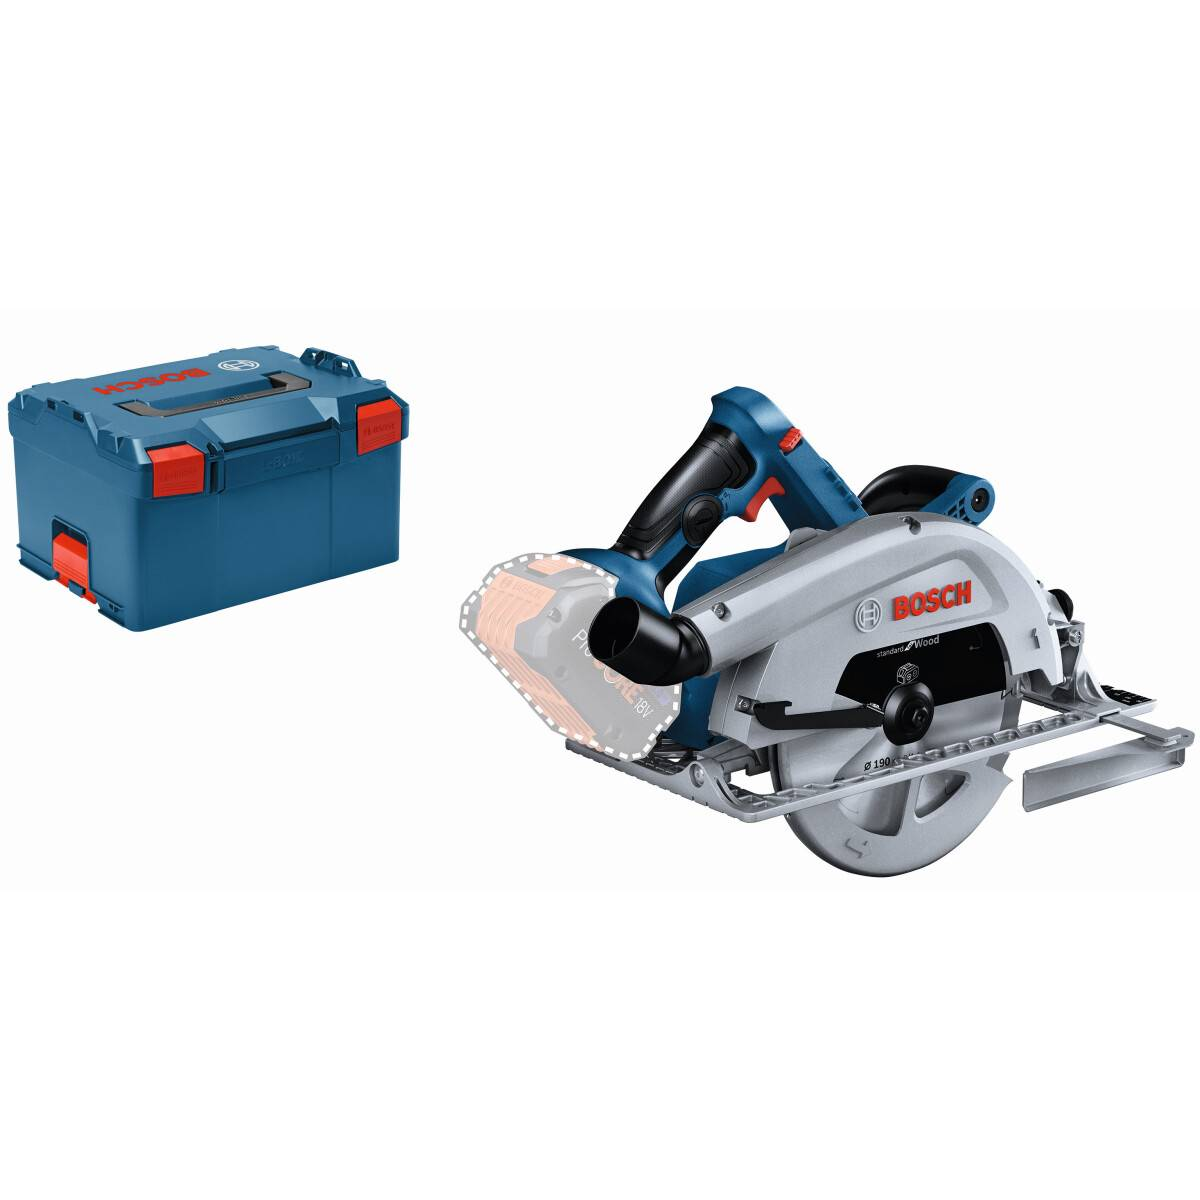 Bosch Gks 18v 68 C 18v Body Only Biturbo Brushless Circular Saw 190mm Connection Ready In L Boxx From Lawson His